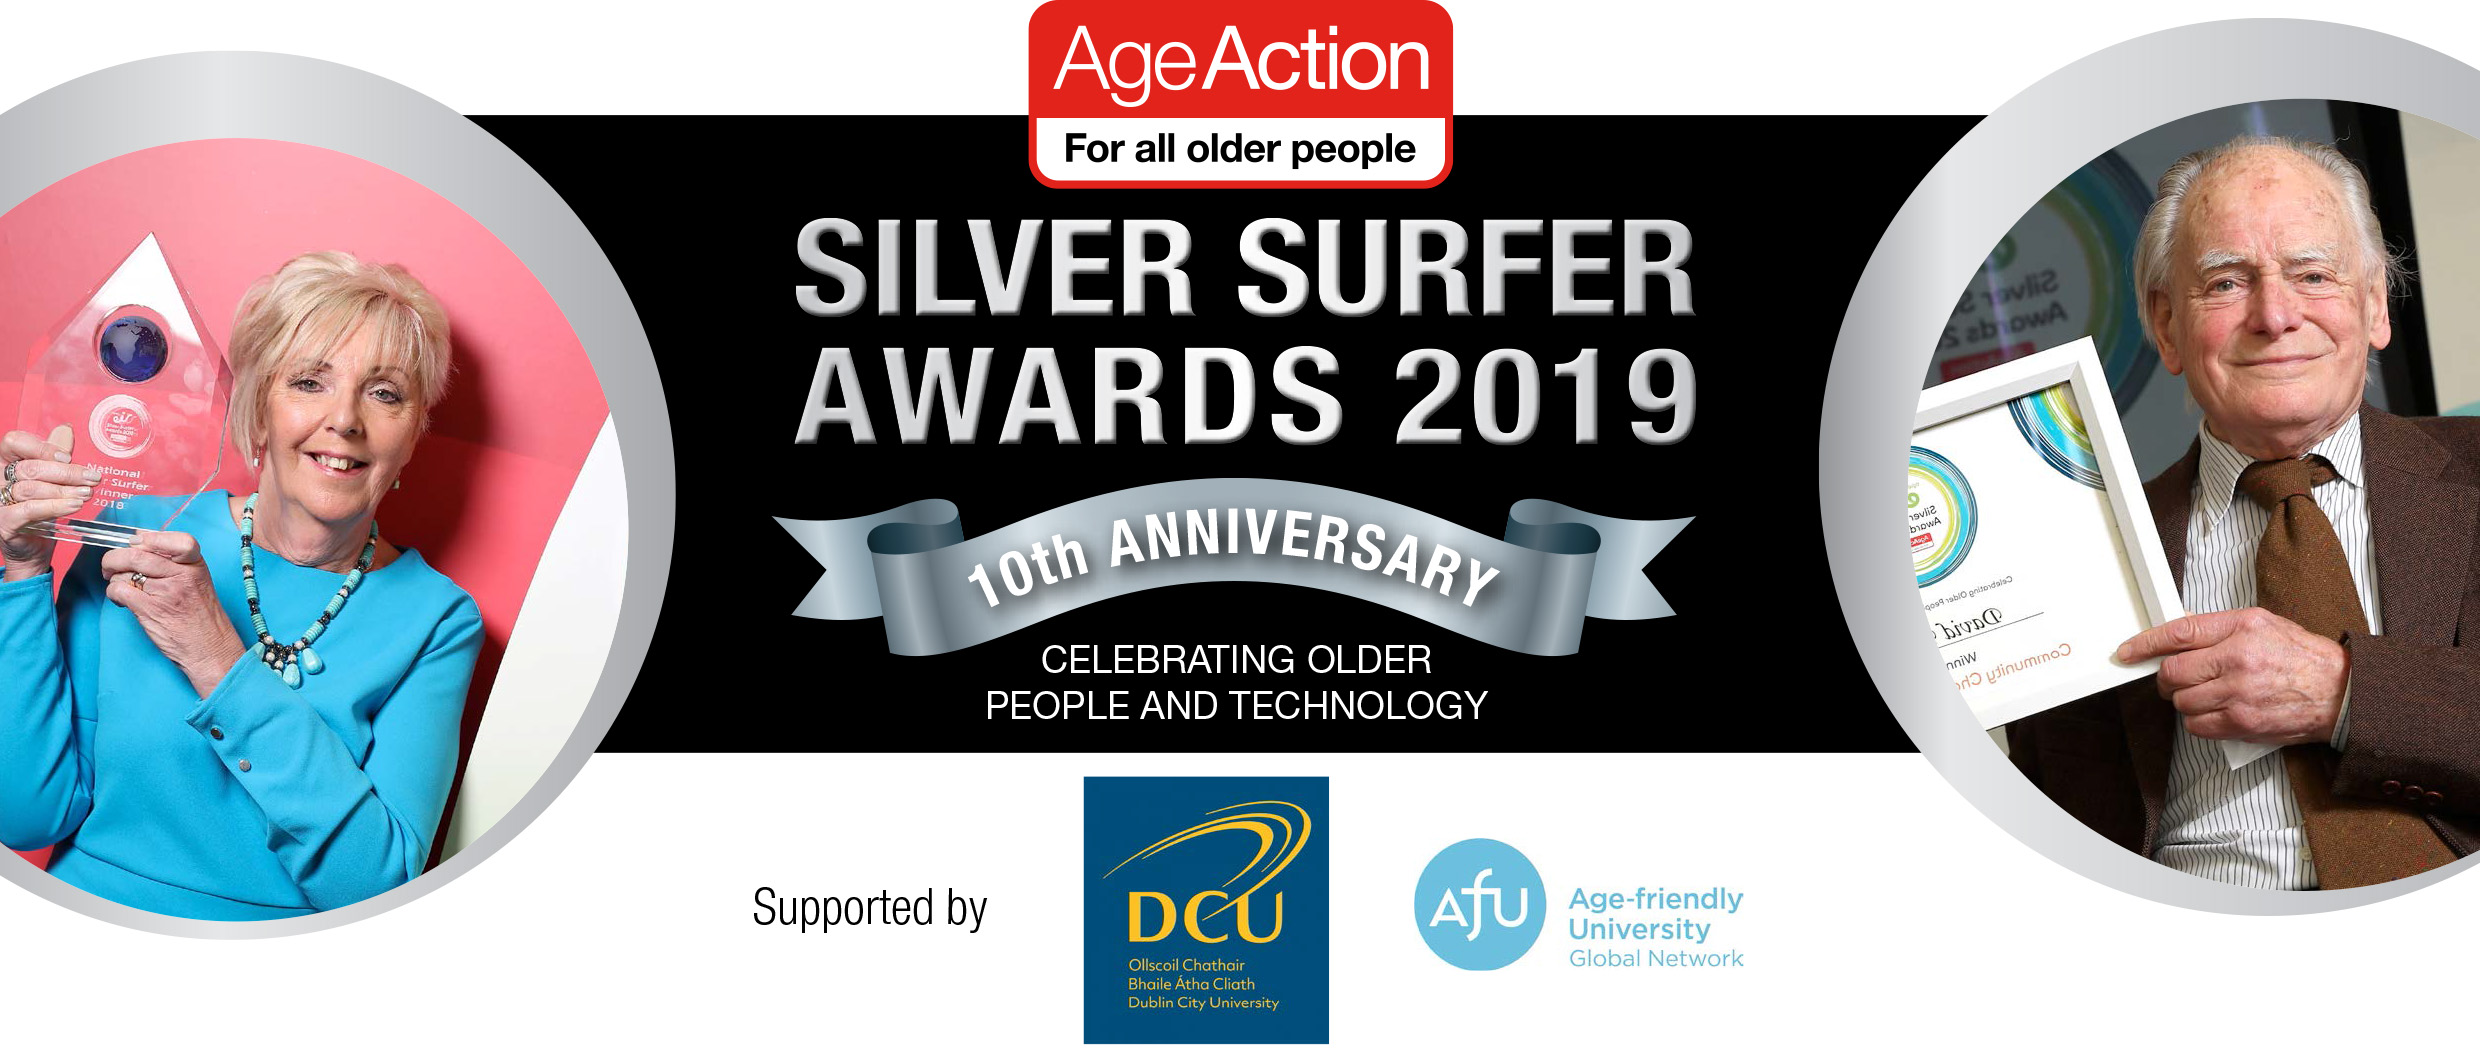 Age Action Silver Surfer Awards 10 year Anniversary